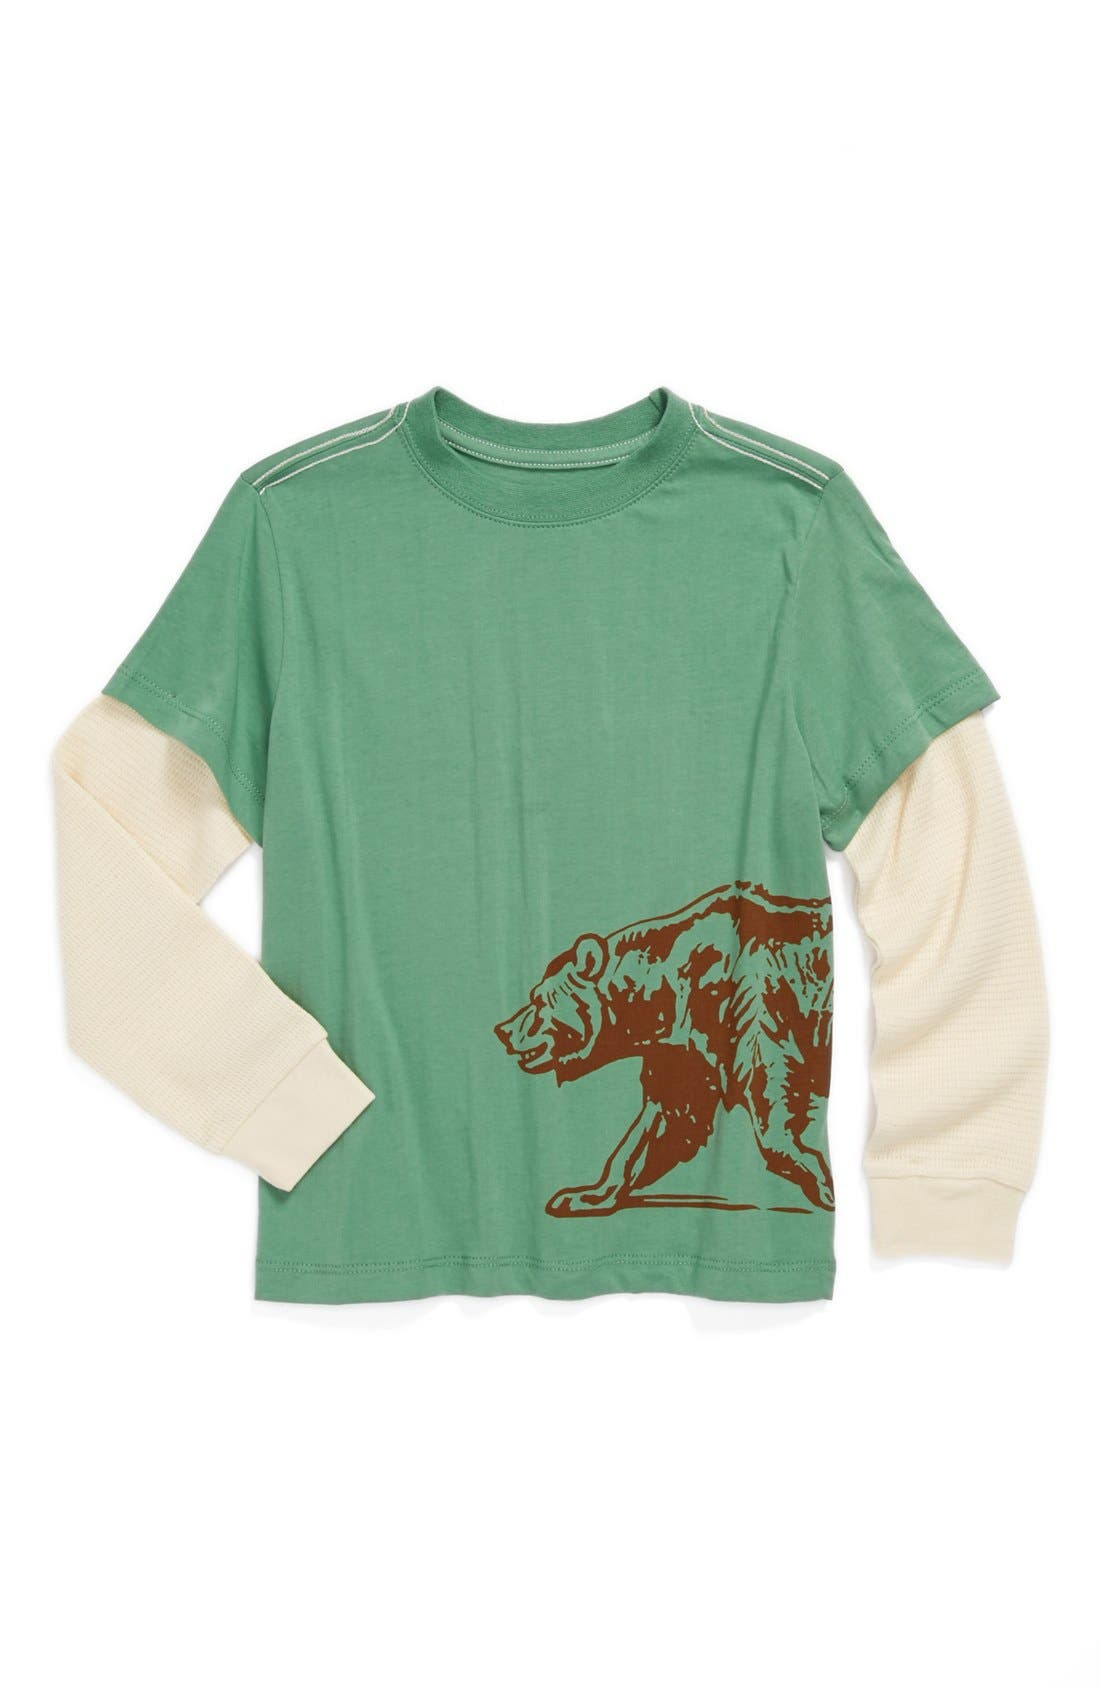 Main Image - Peek 'Bear' T-Shirt (Toddler Boys, Little Boys & Big Boys)